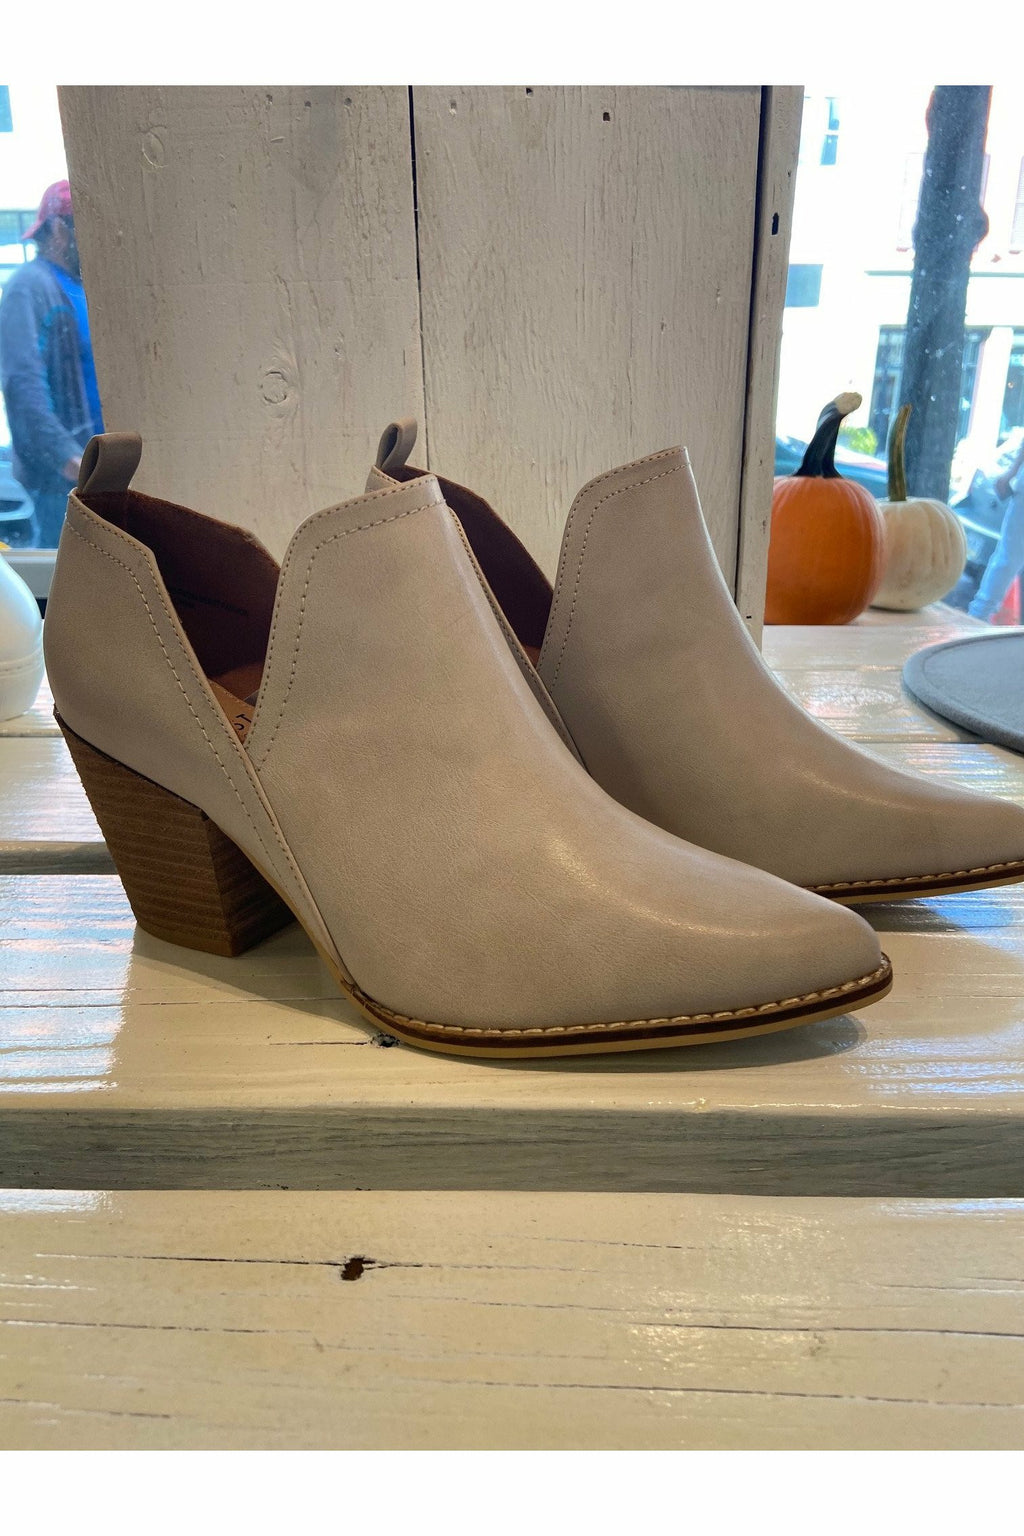 Fall-Tastic Booties